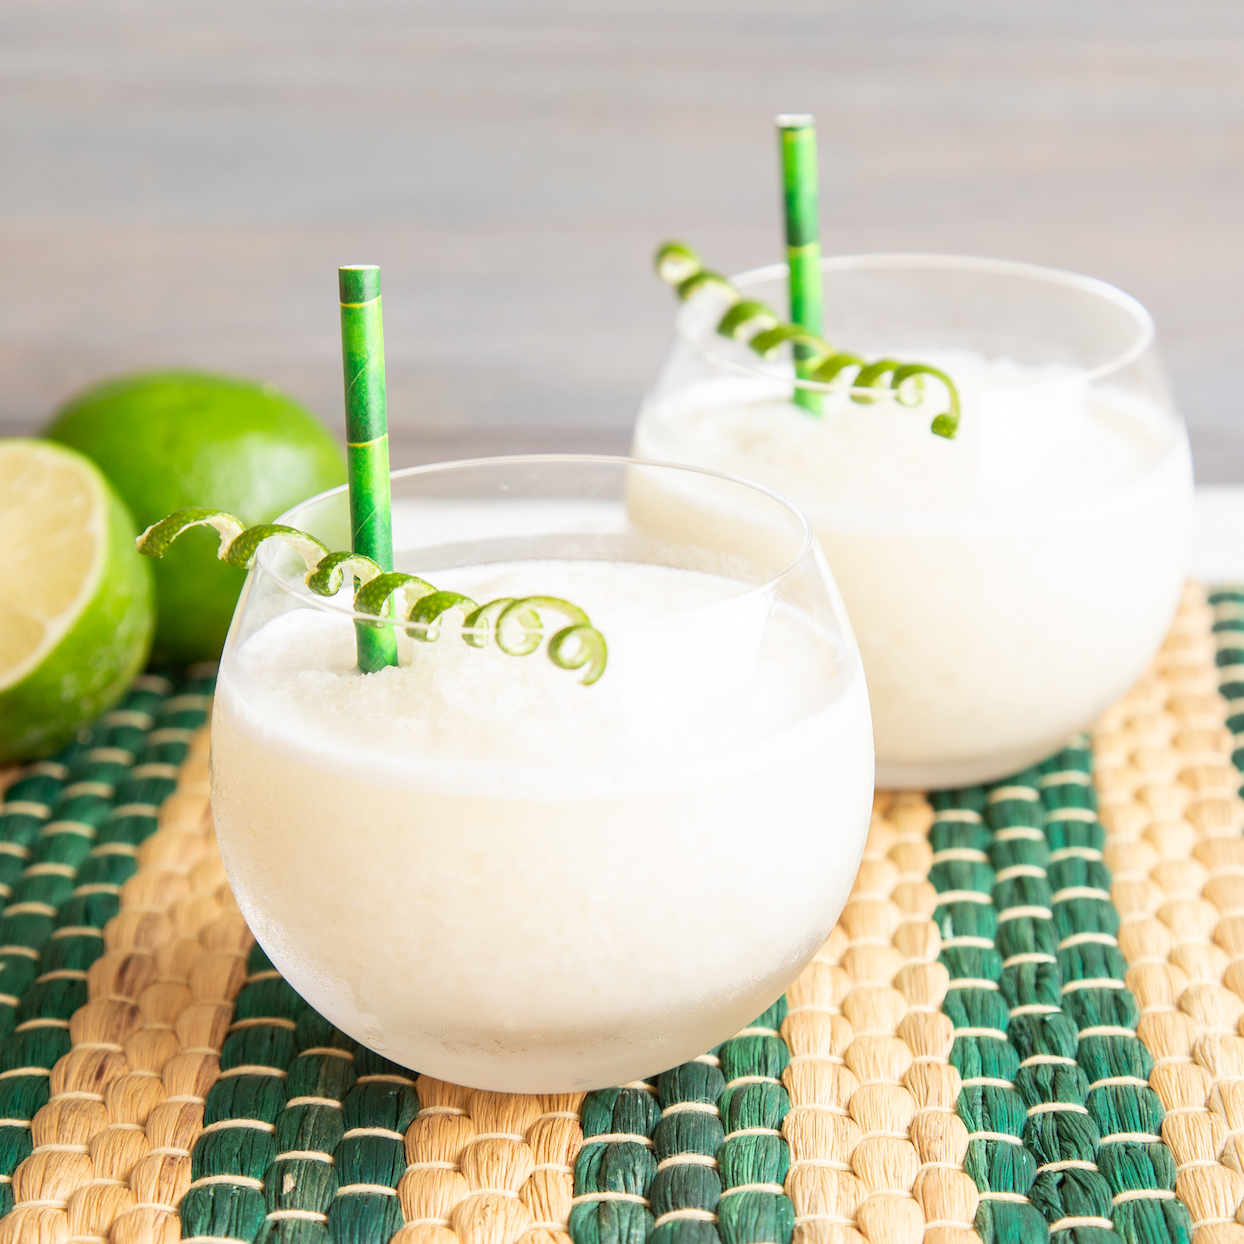 This whipped frozen limeade is a blast from the past--but much better for you! It's got the nostalgic taste of a lemon-lime slushie, and this time it's made with real lime juice and fresh, homemade syrup. Just a splash of dairy is enough to evoke the creaminess of vanilla soft serve mixed with the cool and tangy iced slush. Or use coconut milk creamer for a tropical twist.Source: EatingWell.com, July 2020